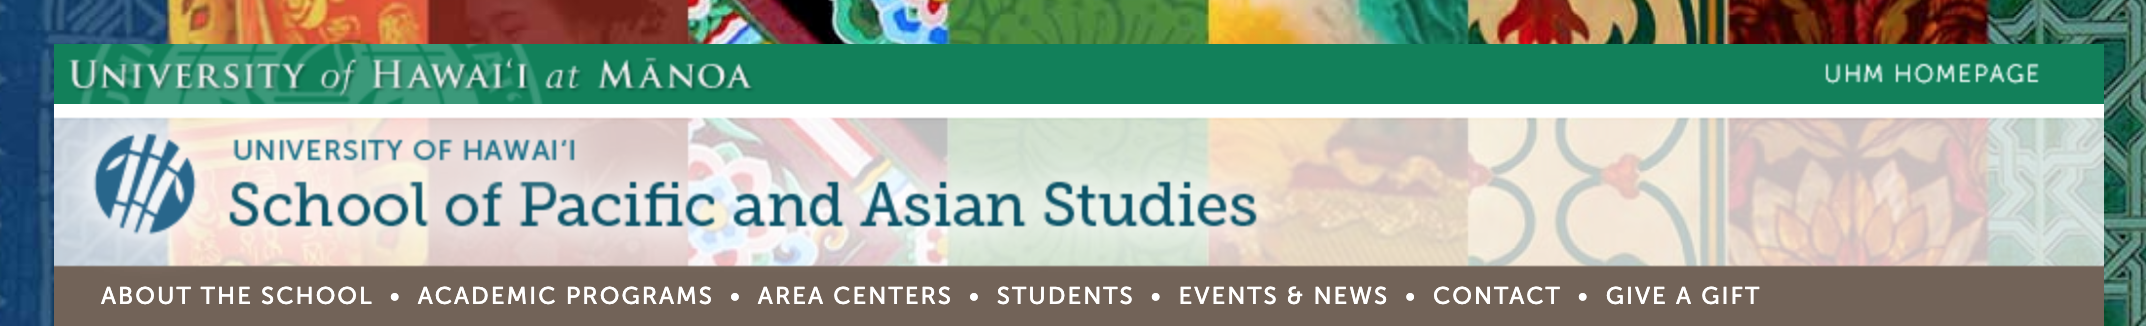 School of Pacific and Asian Studies homepage